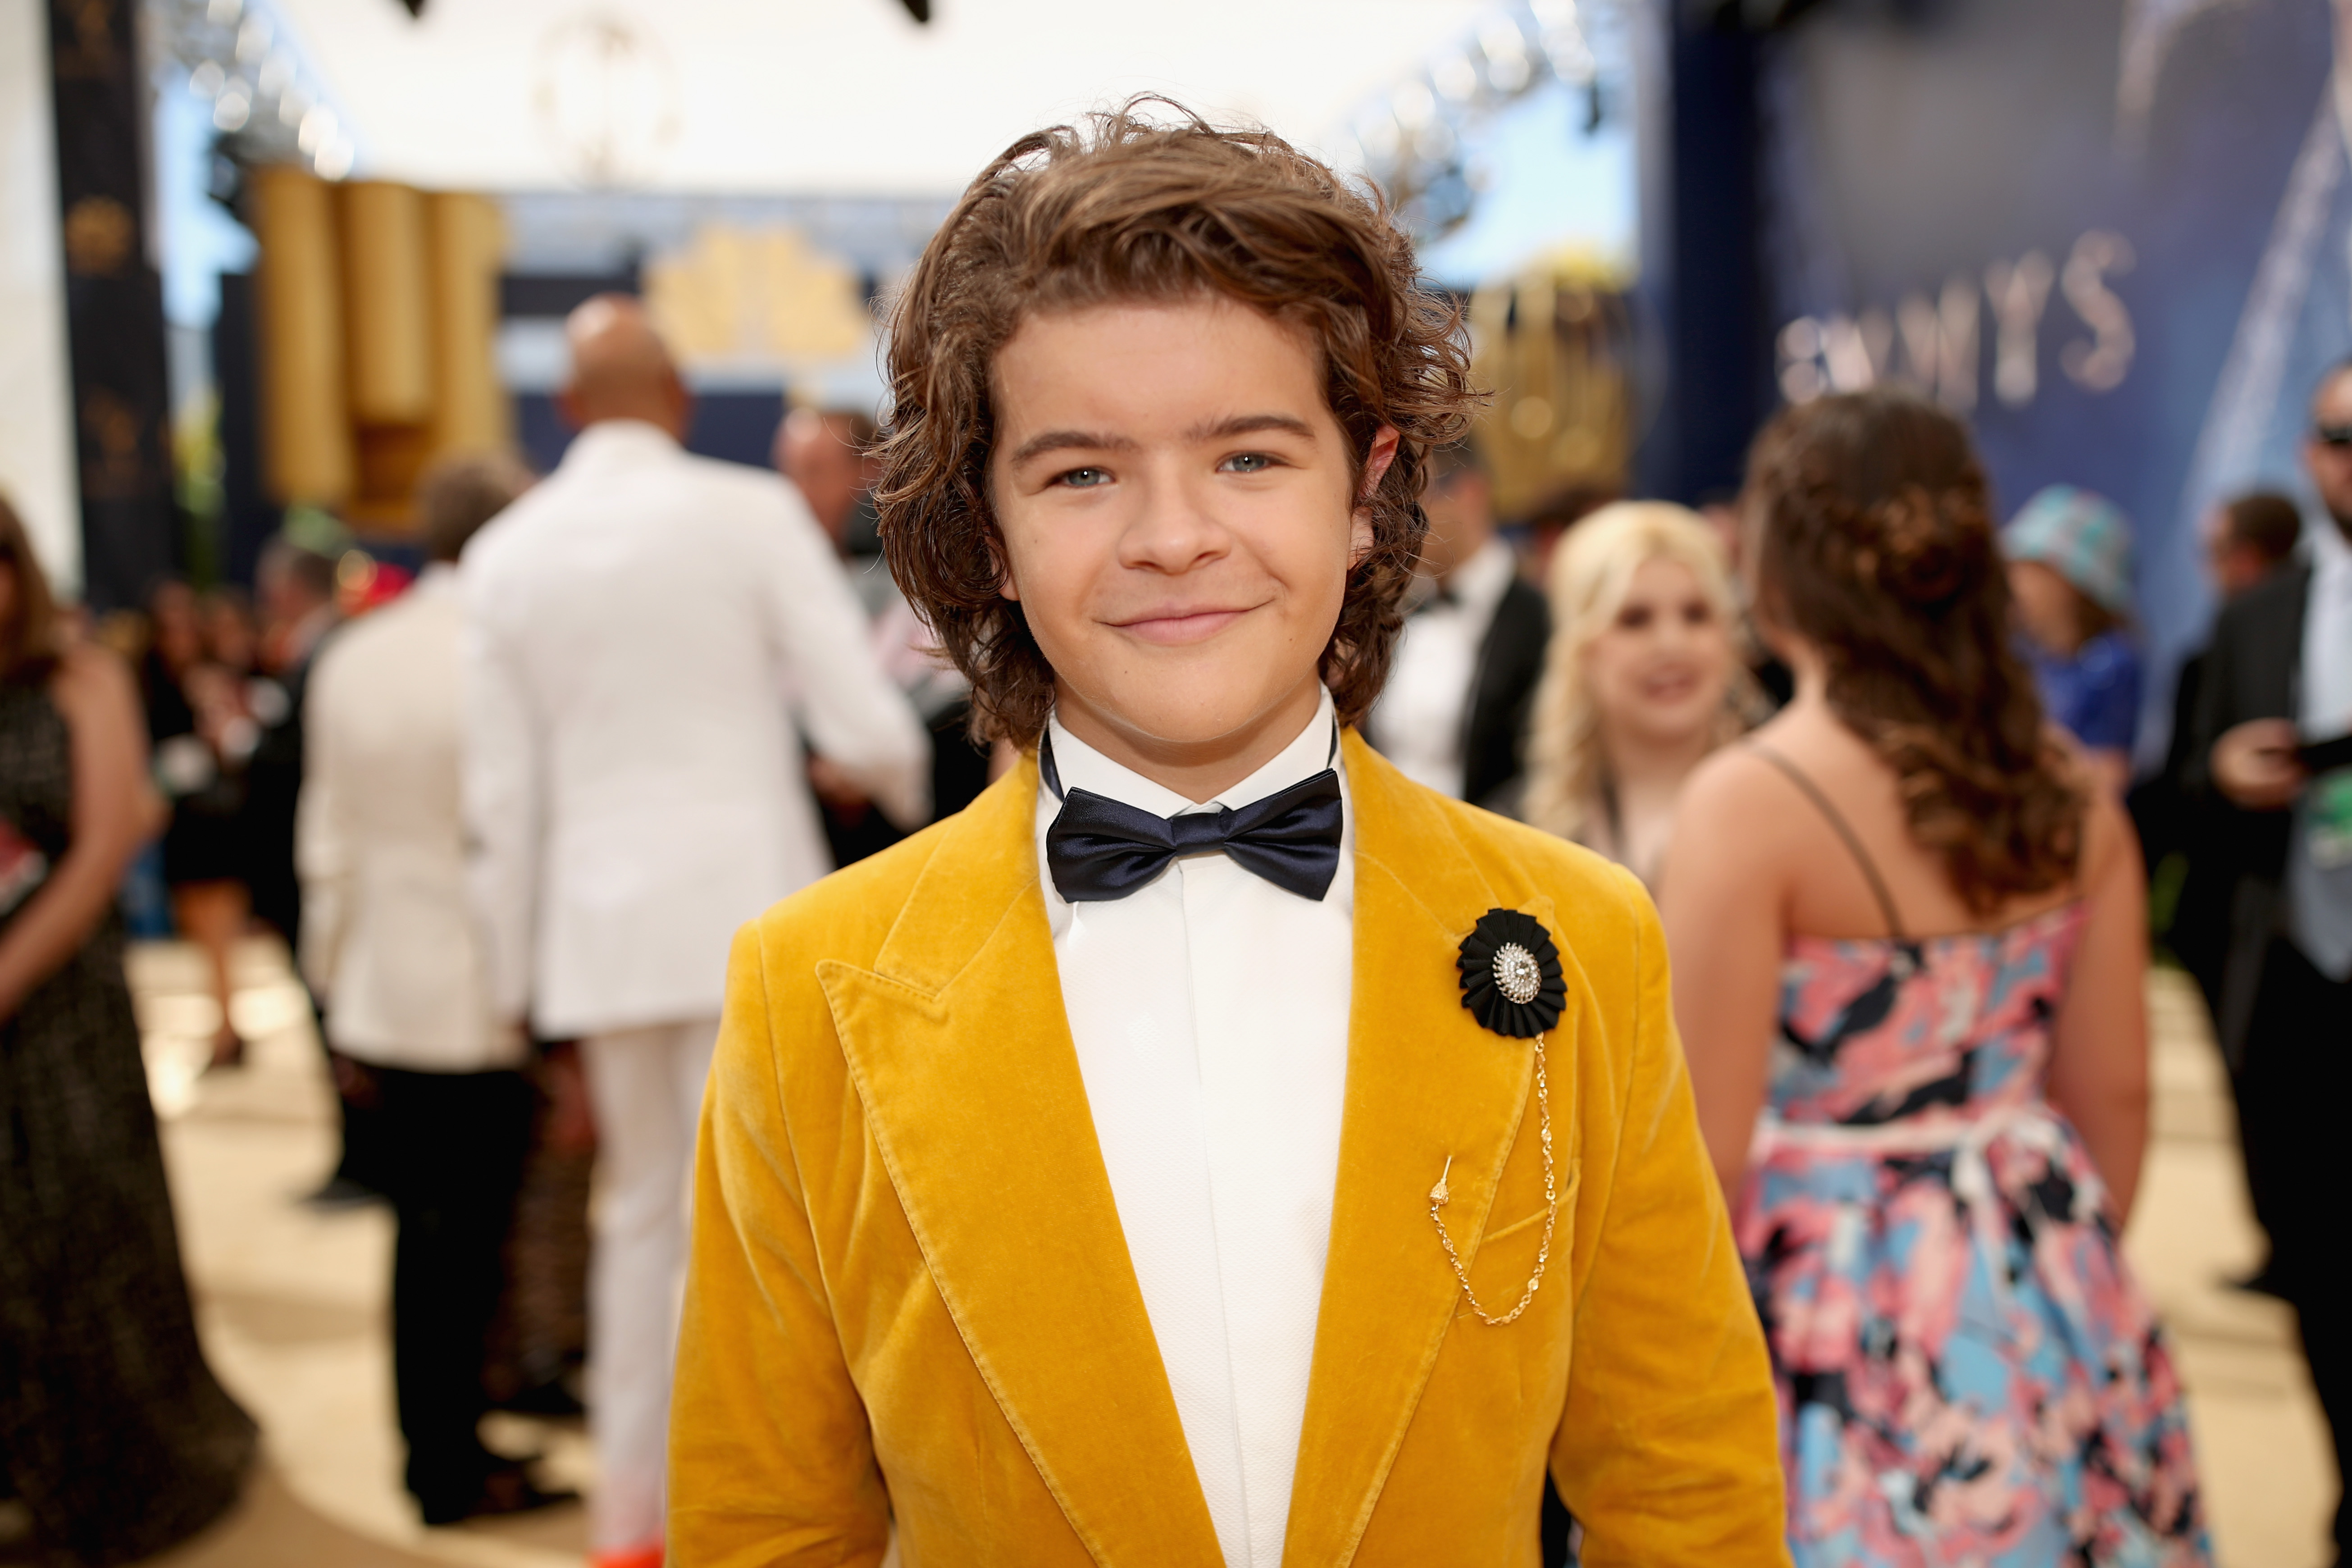 Actor Gaten Matarazzo at the 70th Annual Primetime Emmy Awards on Sept. 17, 2018.